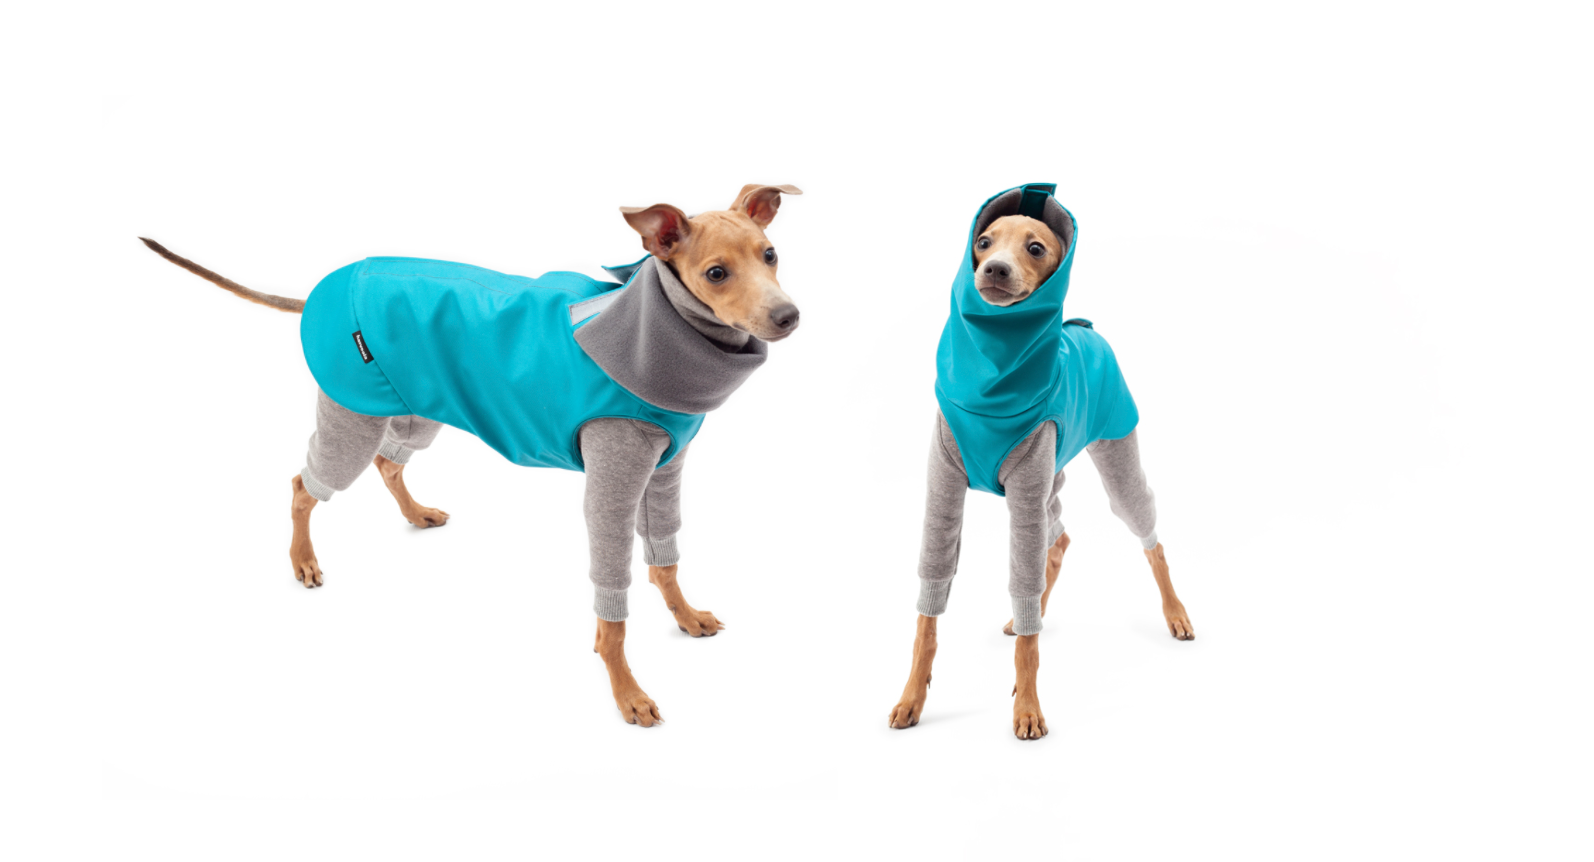 italian greyhounds outfit